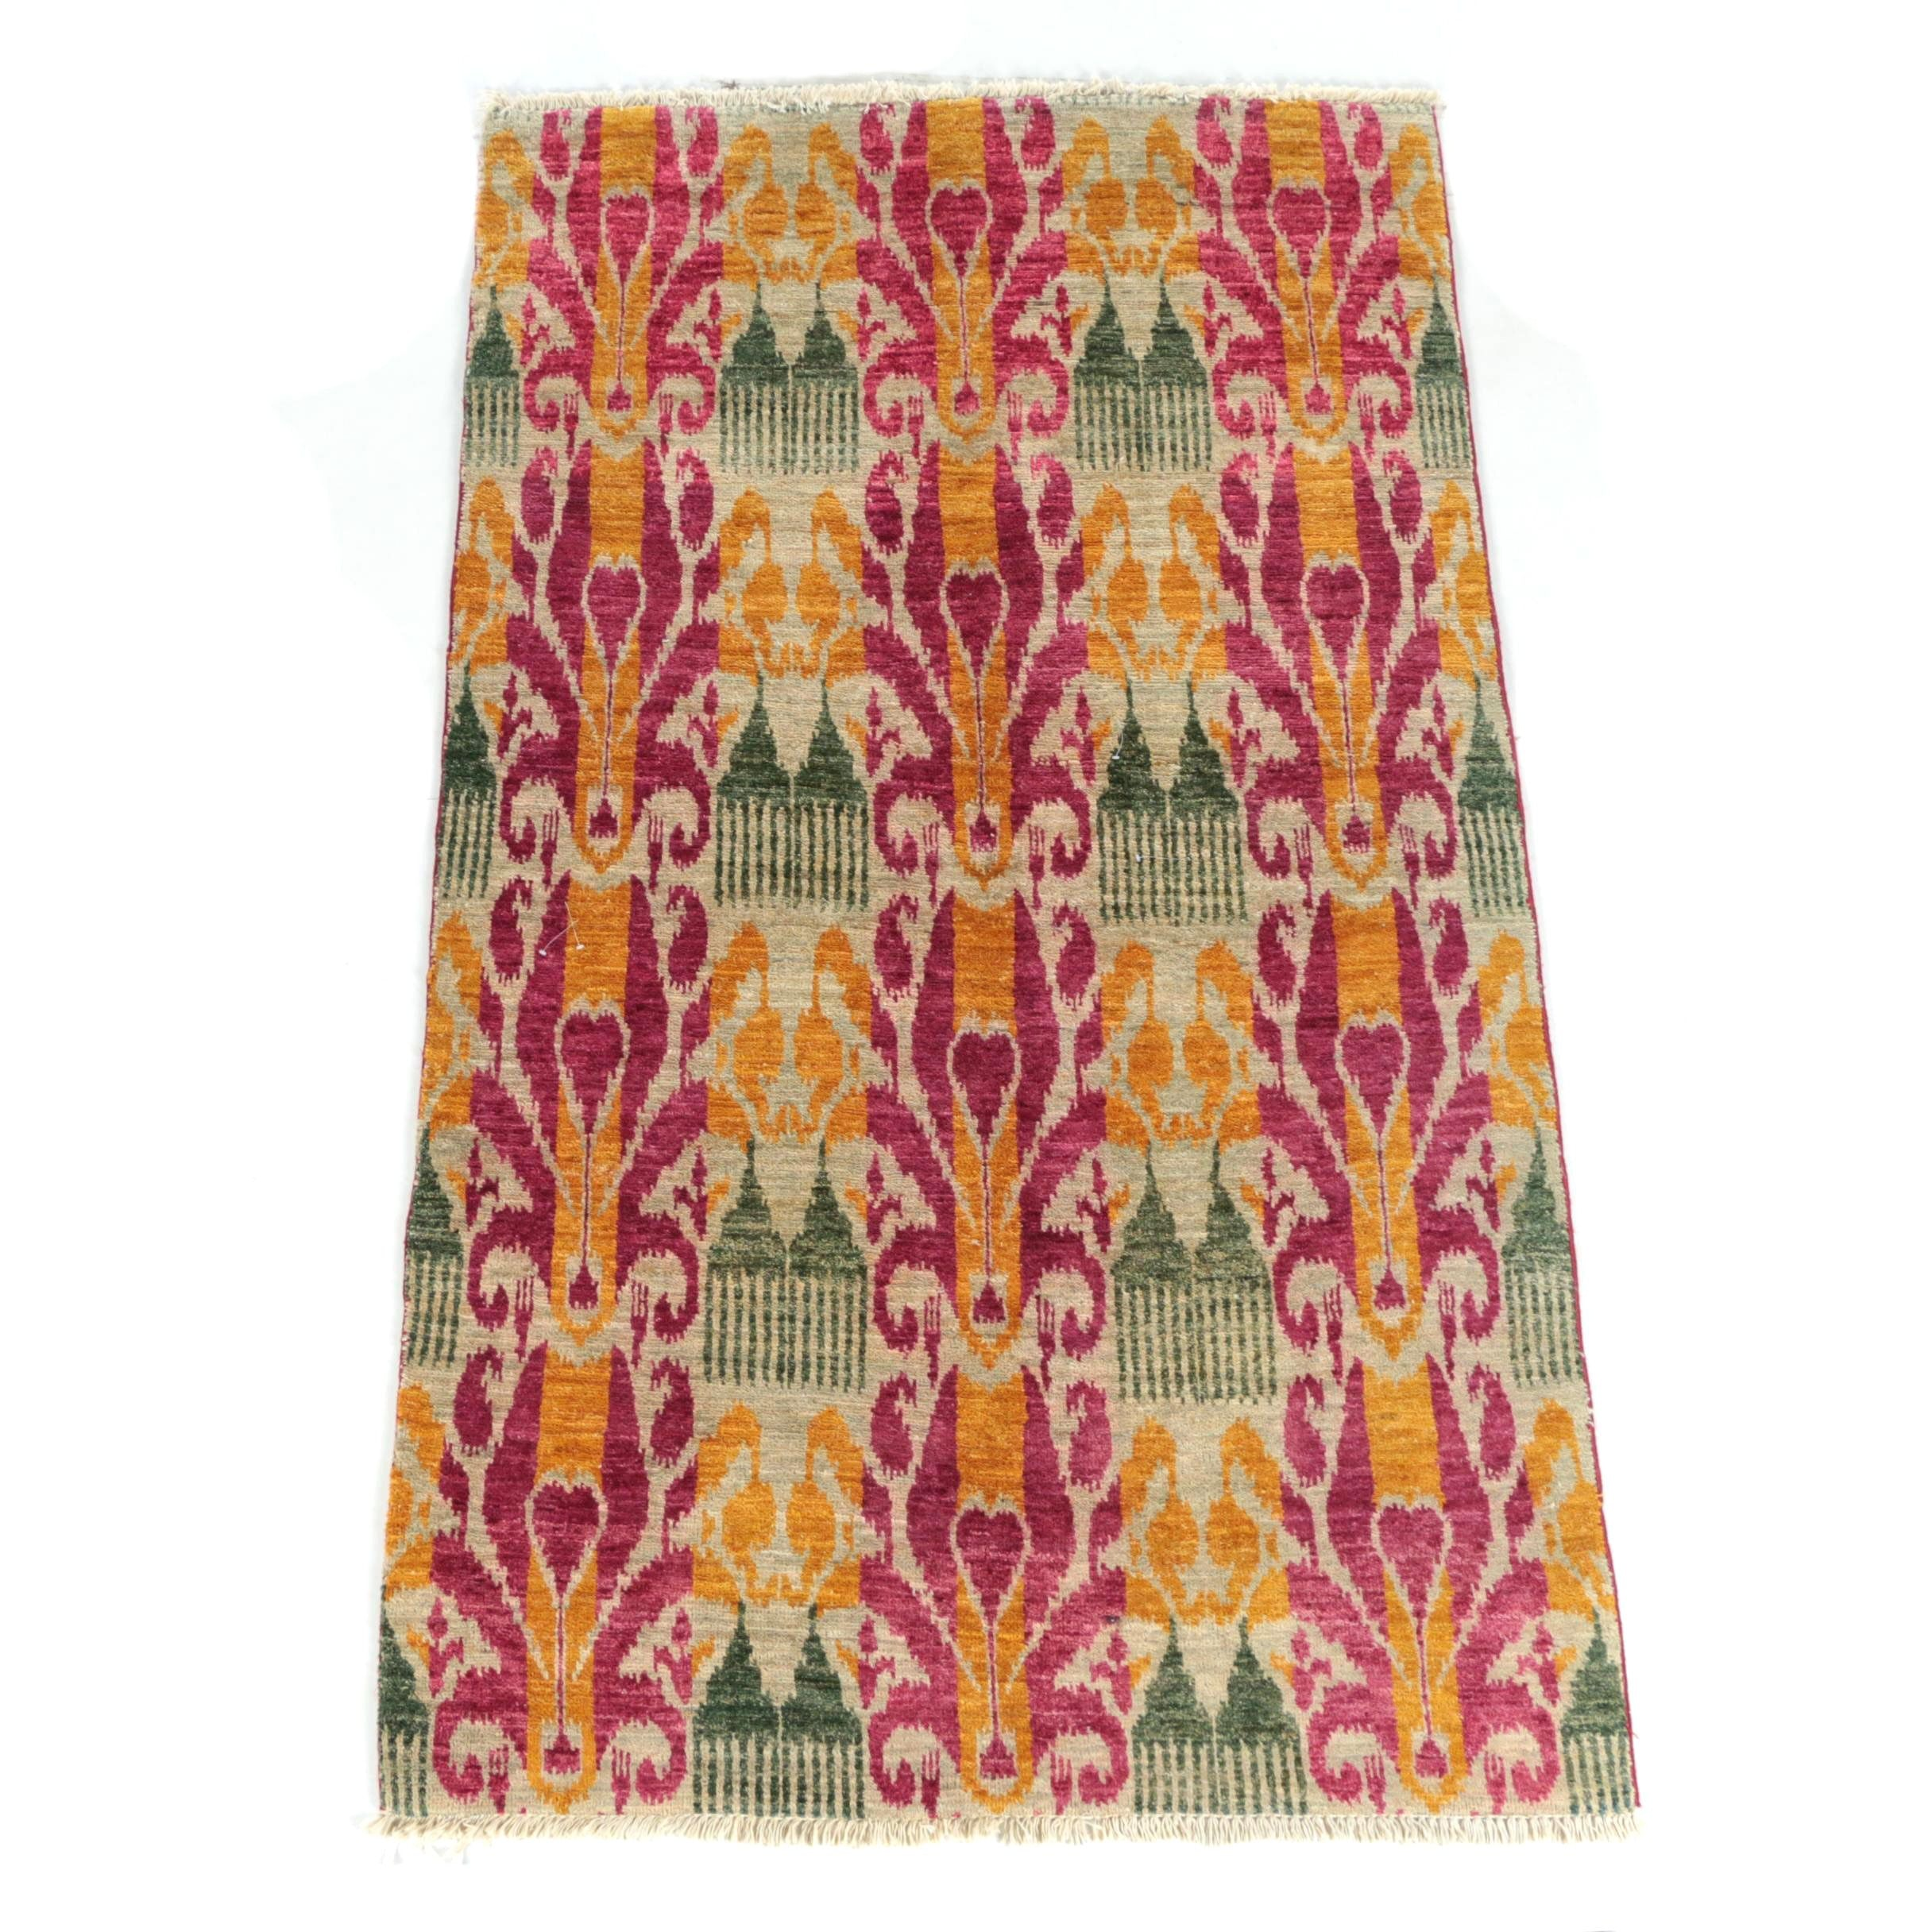 Hand-Knotted Looped Pile Ikat Pattern Wool and Cotton Area Rug